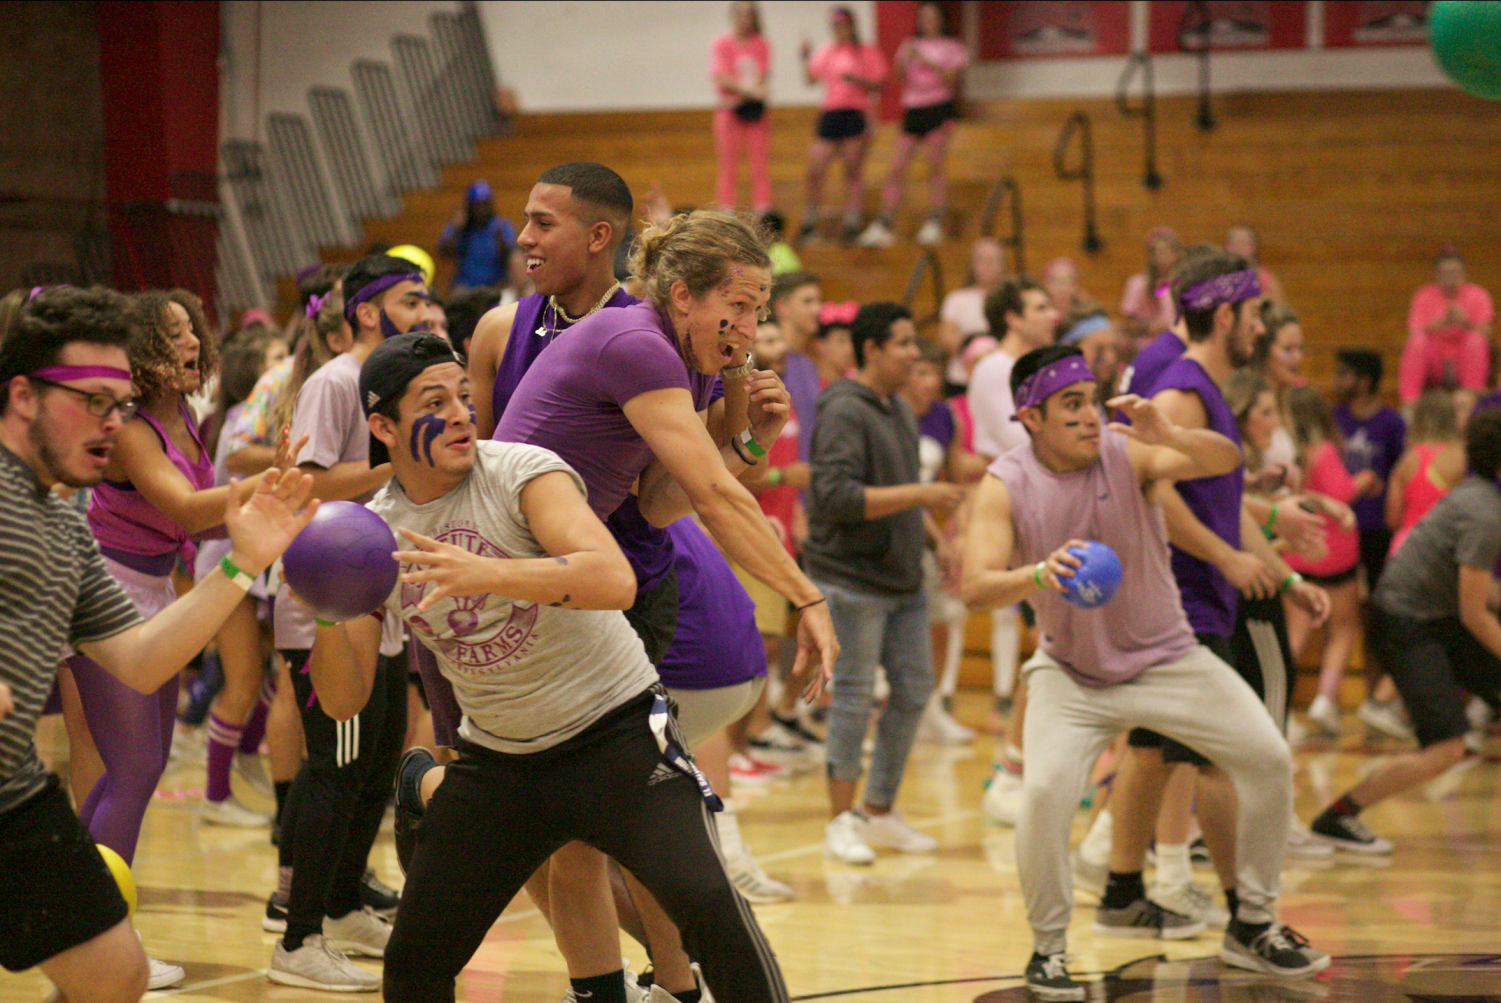 Biola's Off Campus Community (OCC) brings their best to Nationball 2019.